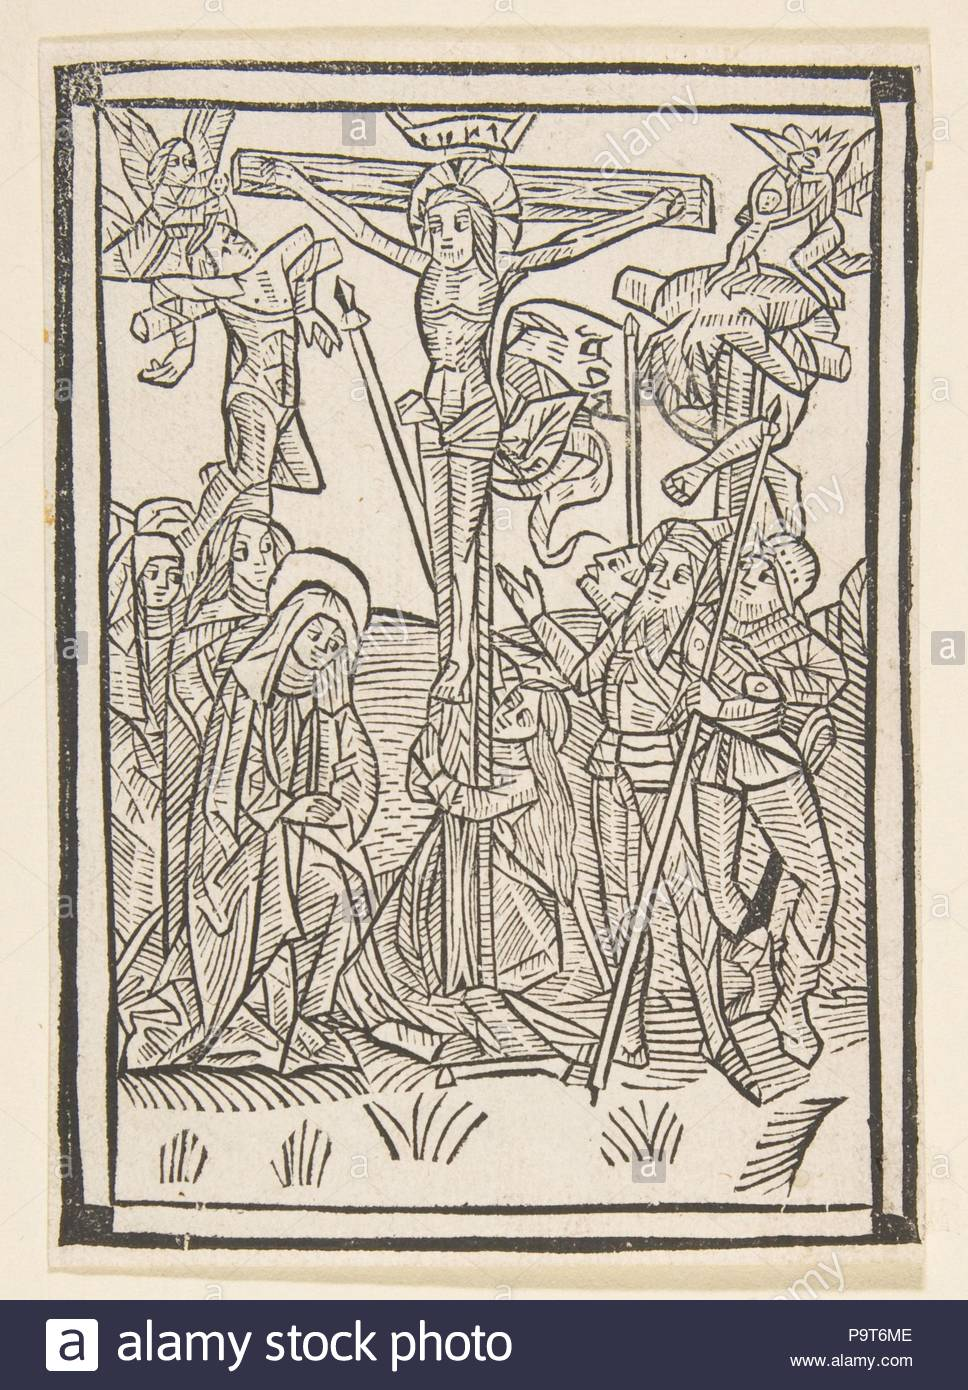 The Crucifixion (Schr. 486), 15th century, Woodcut, sheet: 4 13/16 x 3 1/2 in. (12.3 x 8.9 cm), Prints, Anonymous, German, 15th century. - Stock Image